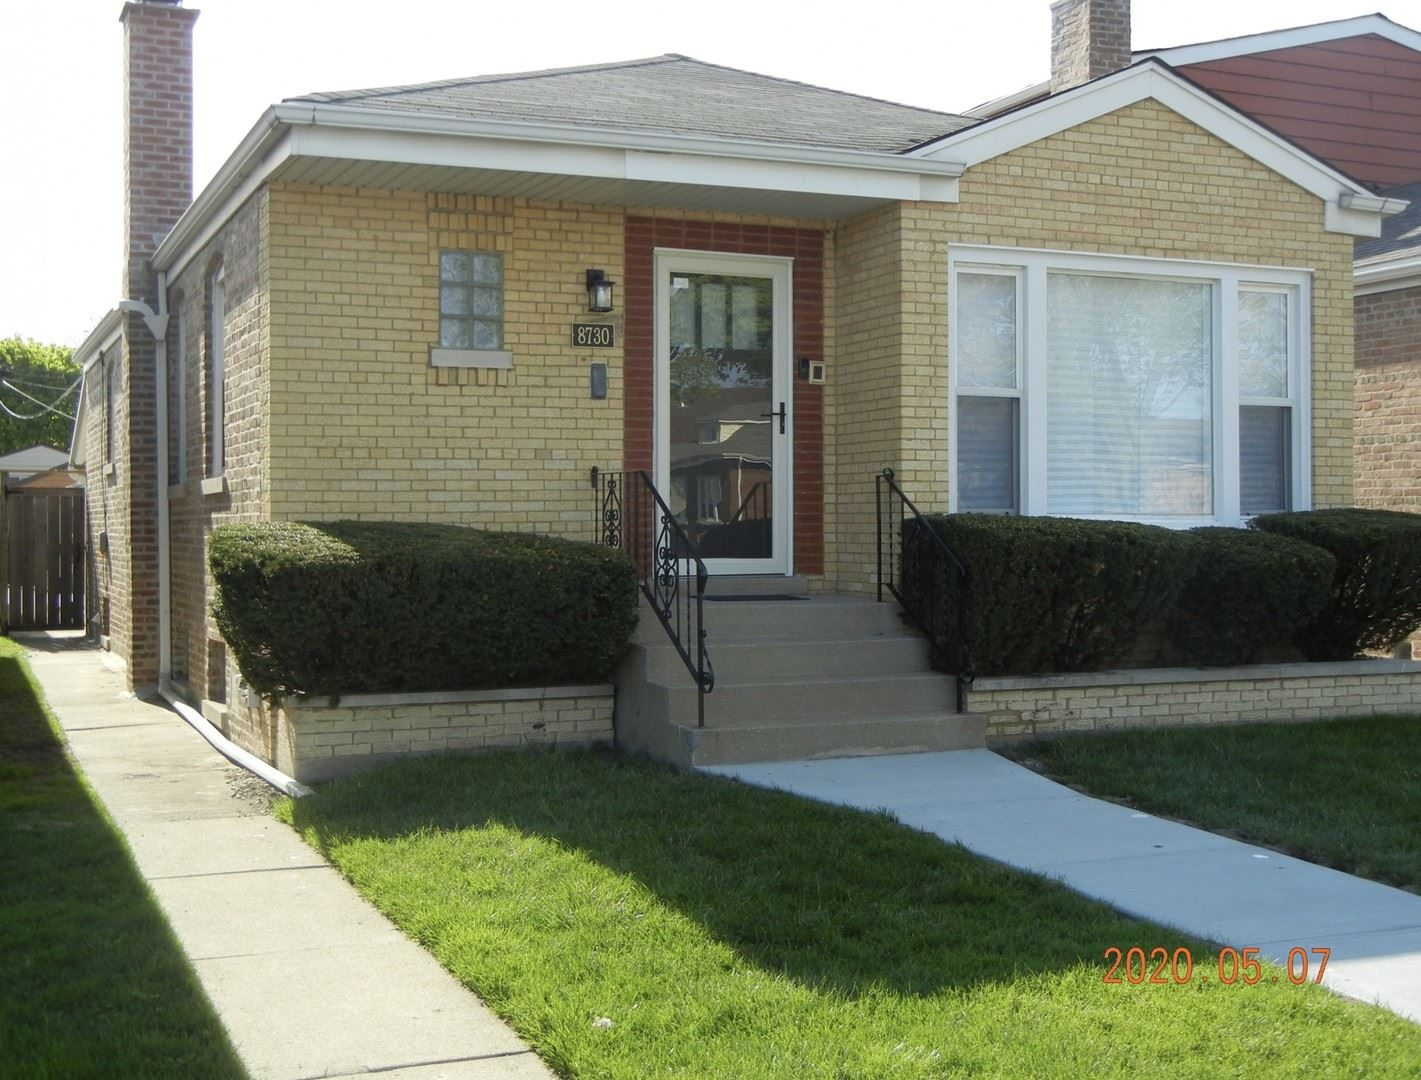 8730 S King Drive S, Chicago, IL 60619 - #: 10711286